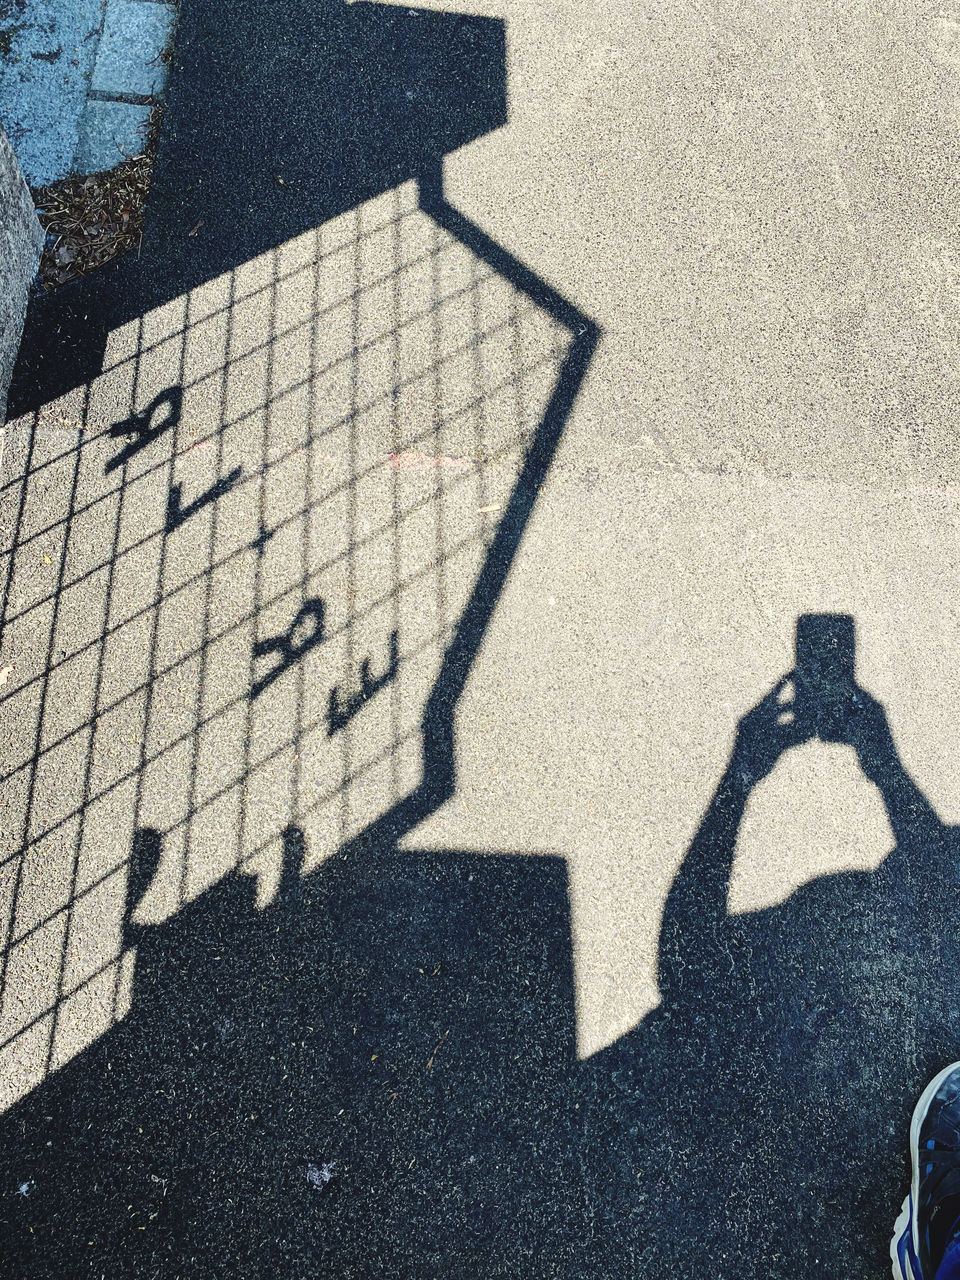 SHADOW OF PEOPLE ON STREET IN CITY ON SUNNY DAY